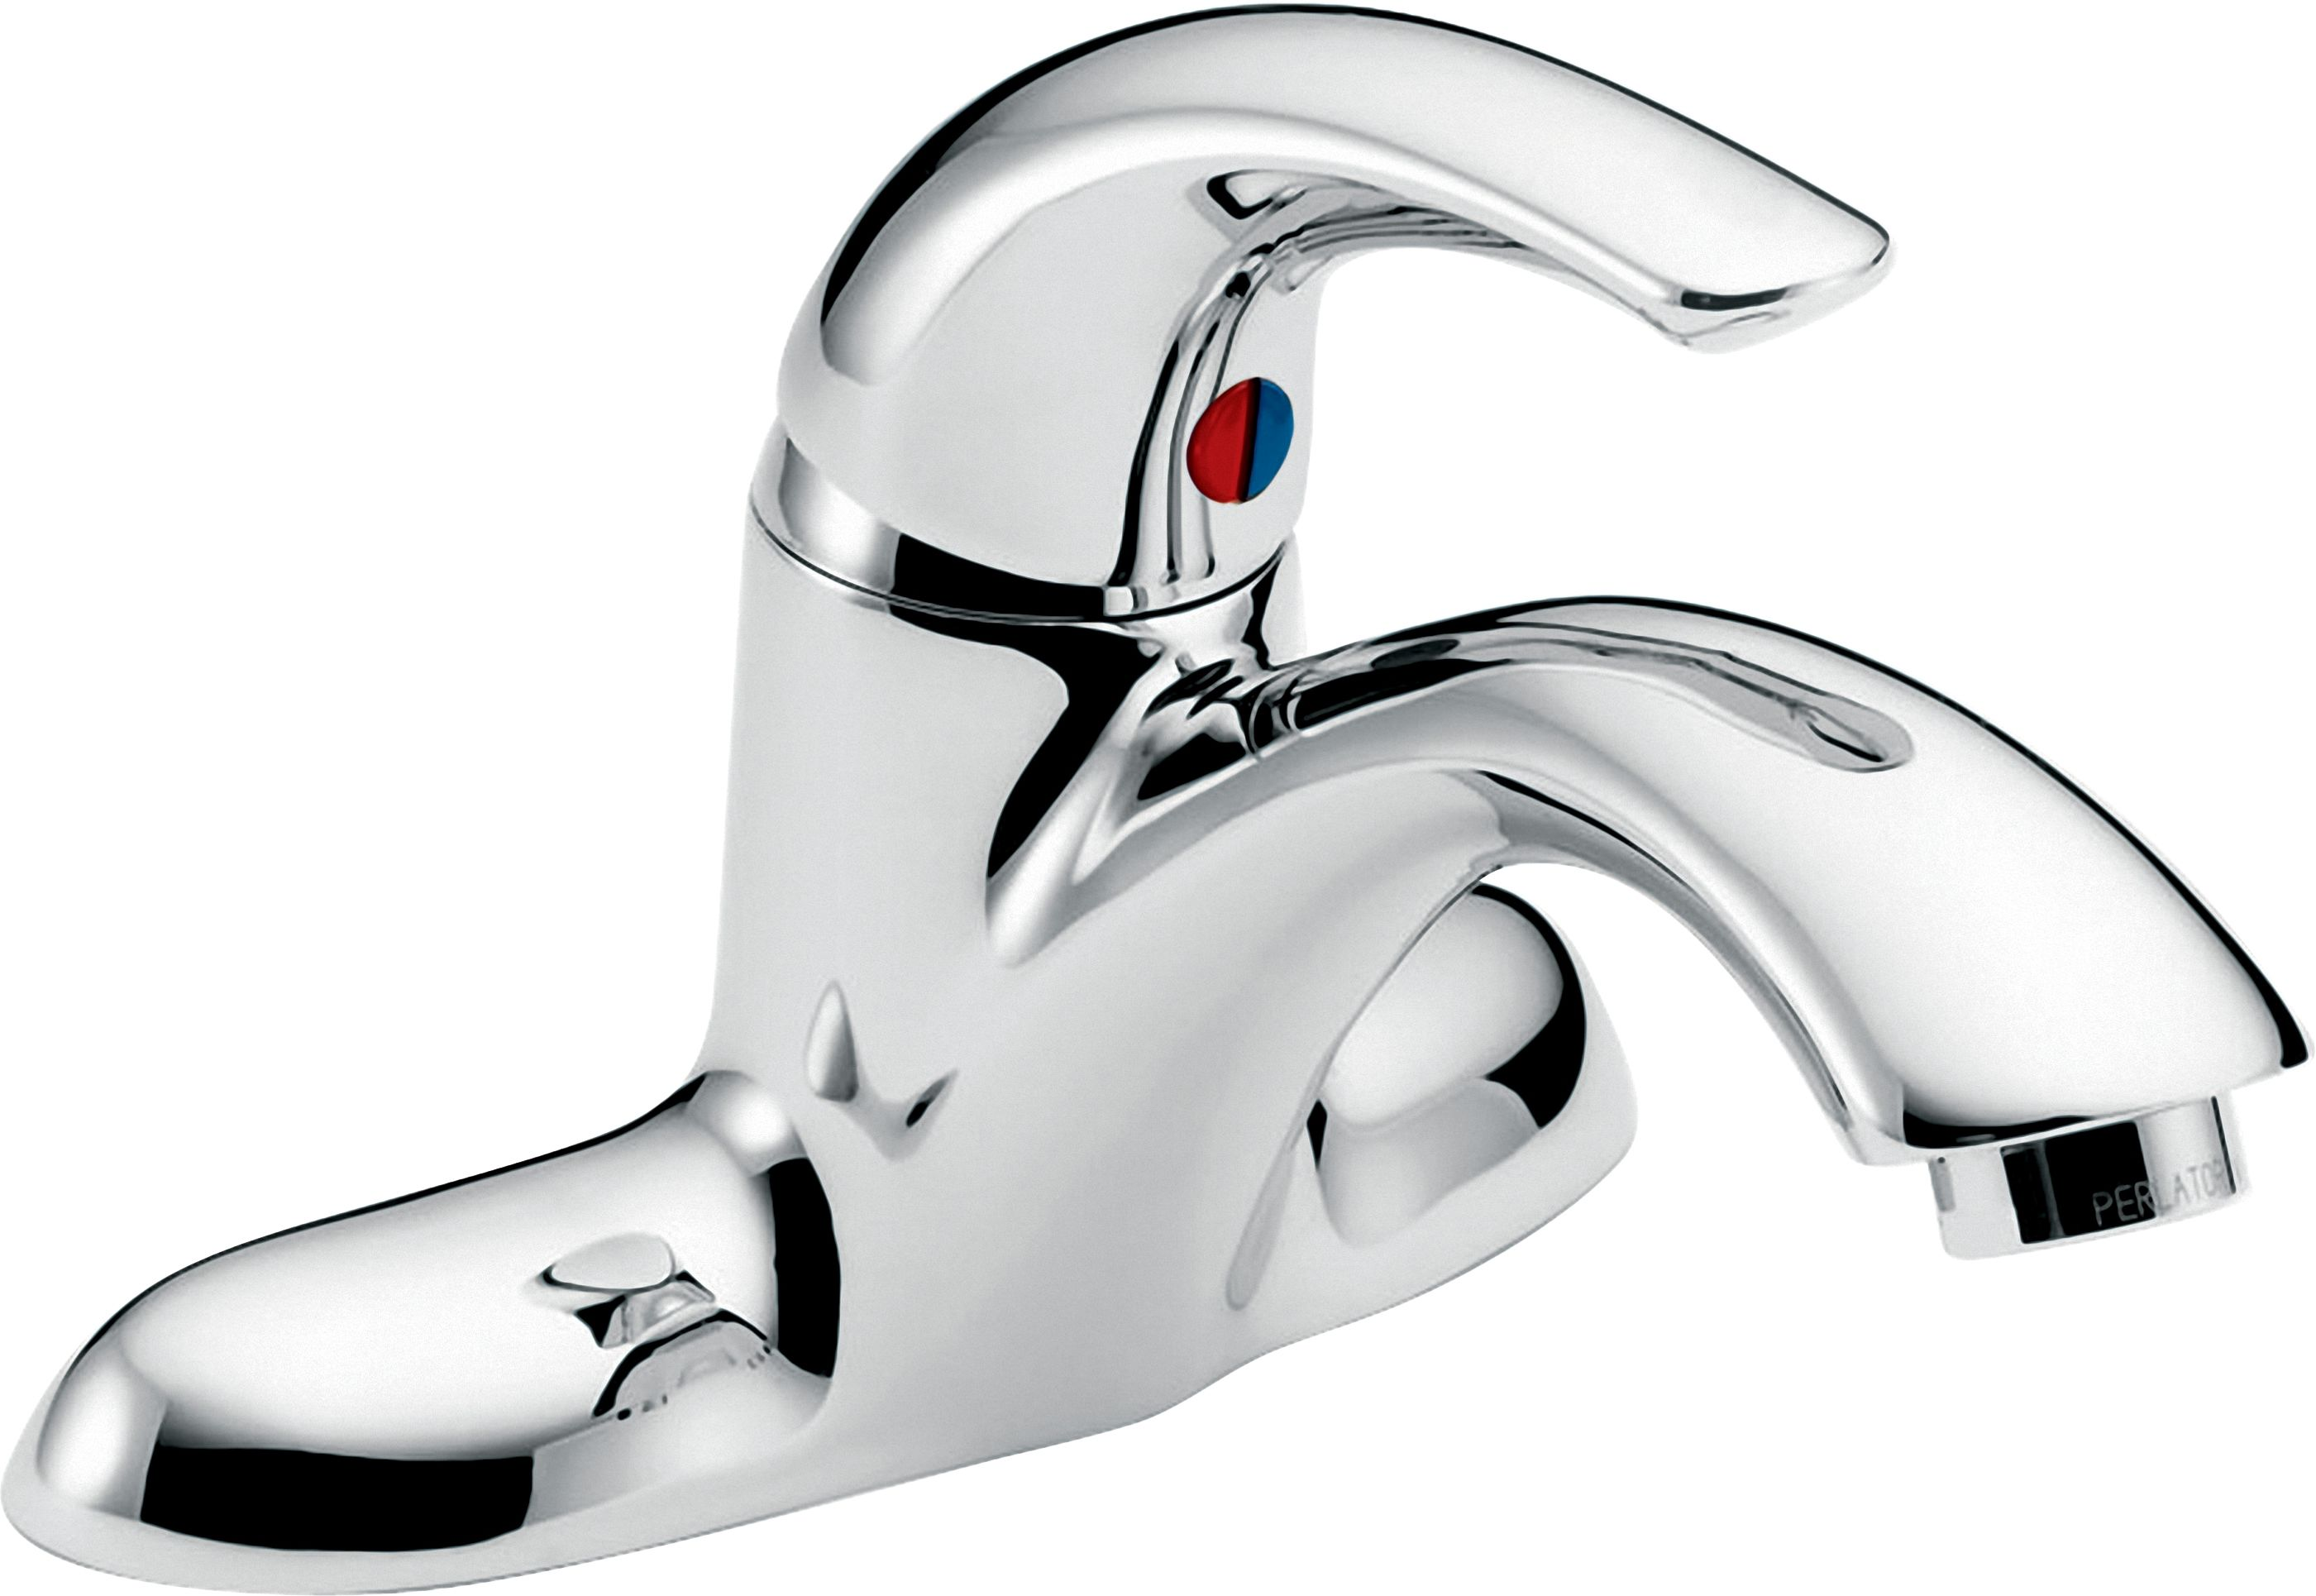 Delta 22c021 chrome single handle 1 5gpm bathroom faucet with antimicrobial by agion and pop up hole less pop up assembly from the commercial series